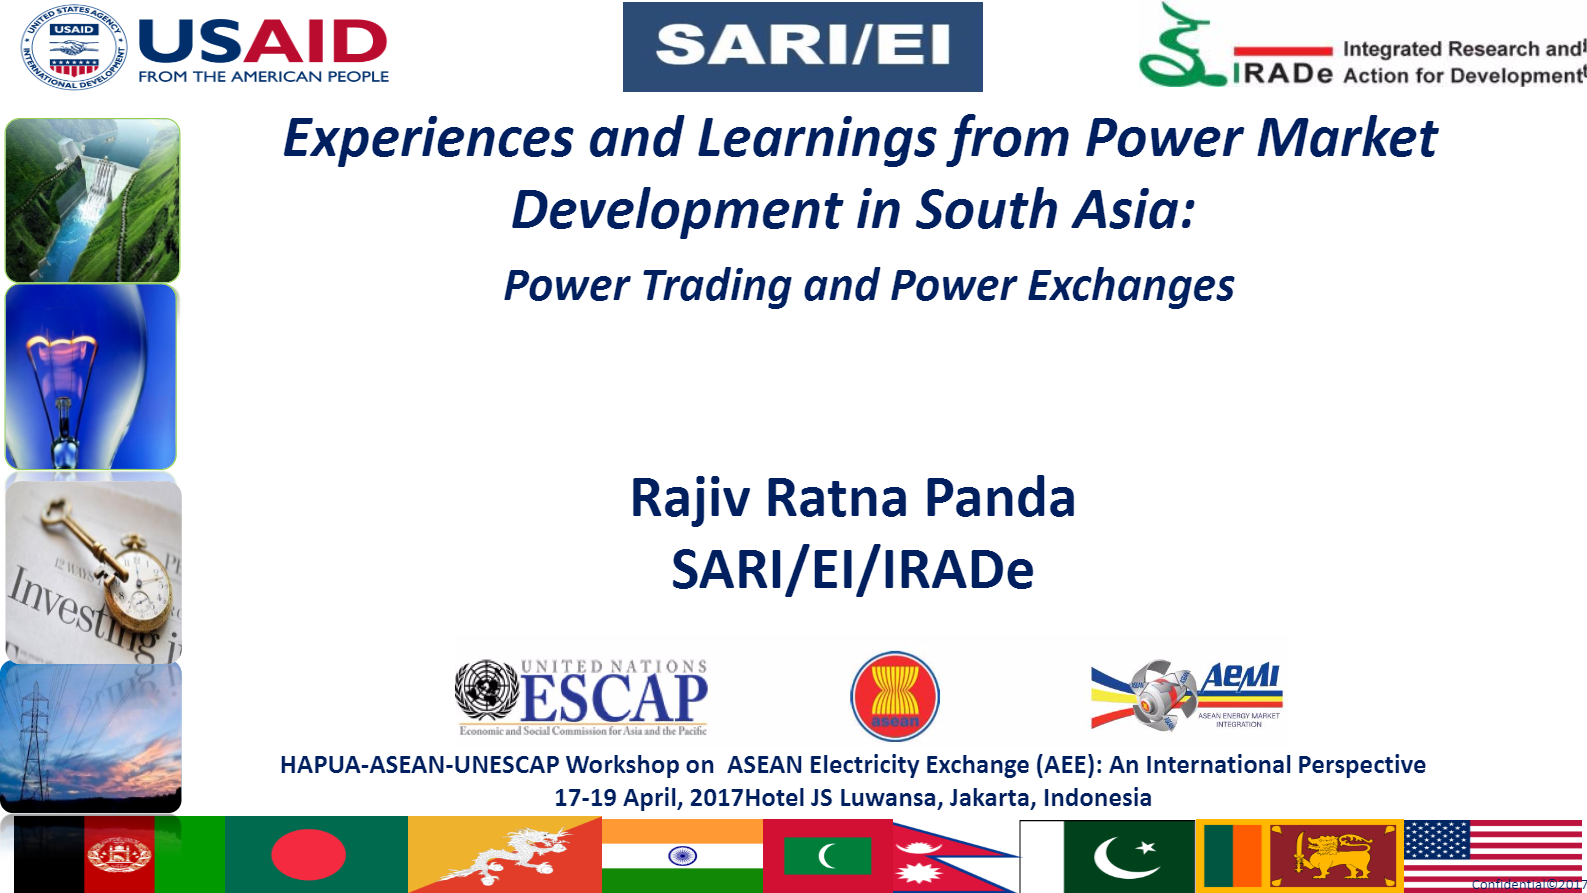 Experiences-and-Learnings-from-Power-Market-Development-in-South-Asia-Rajiv-SARI-EI-IRADe